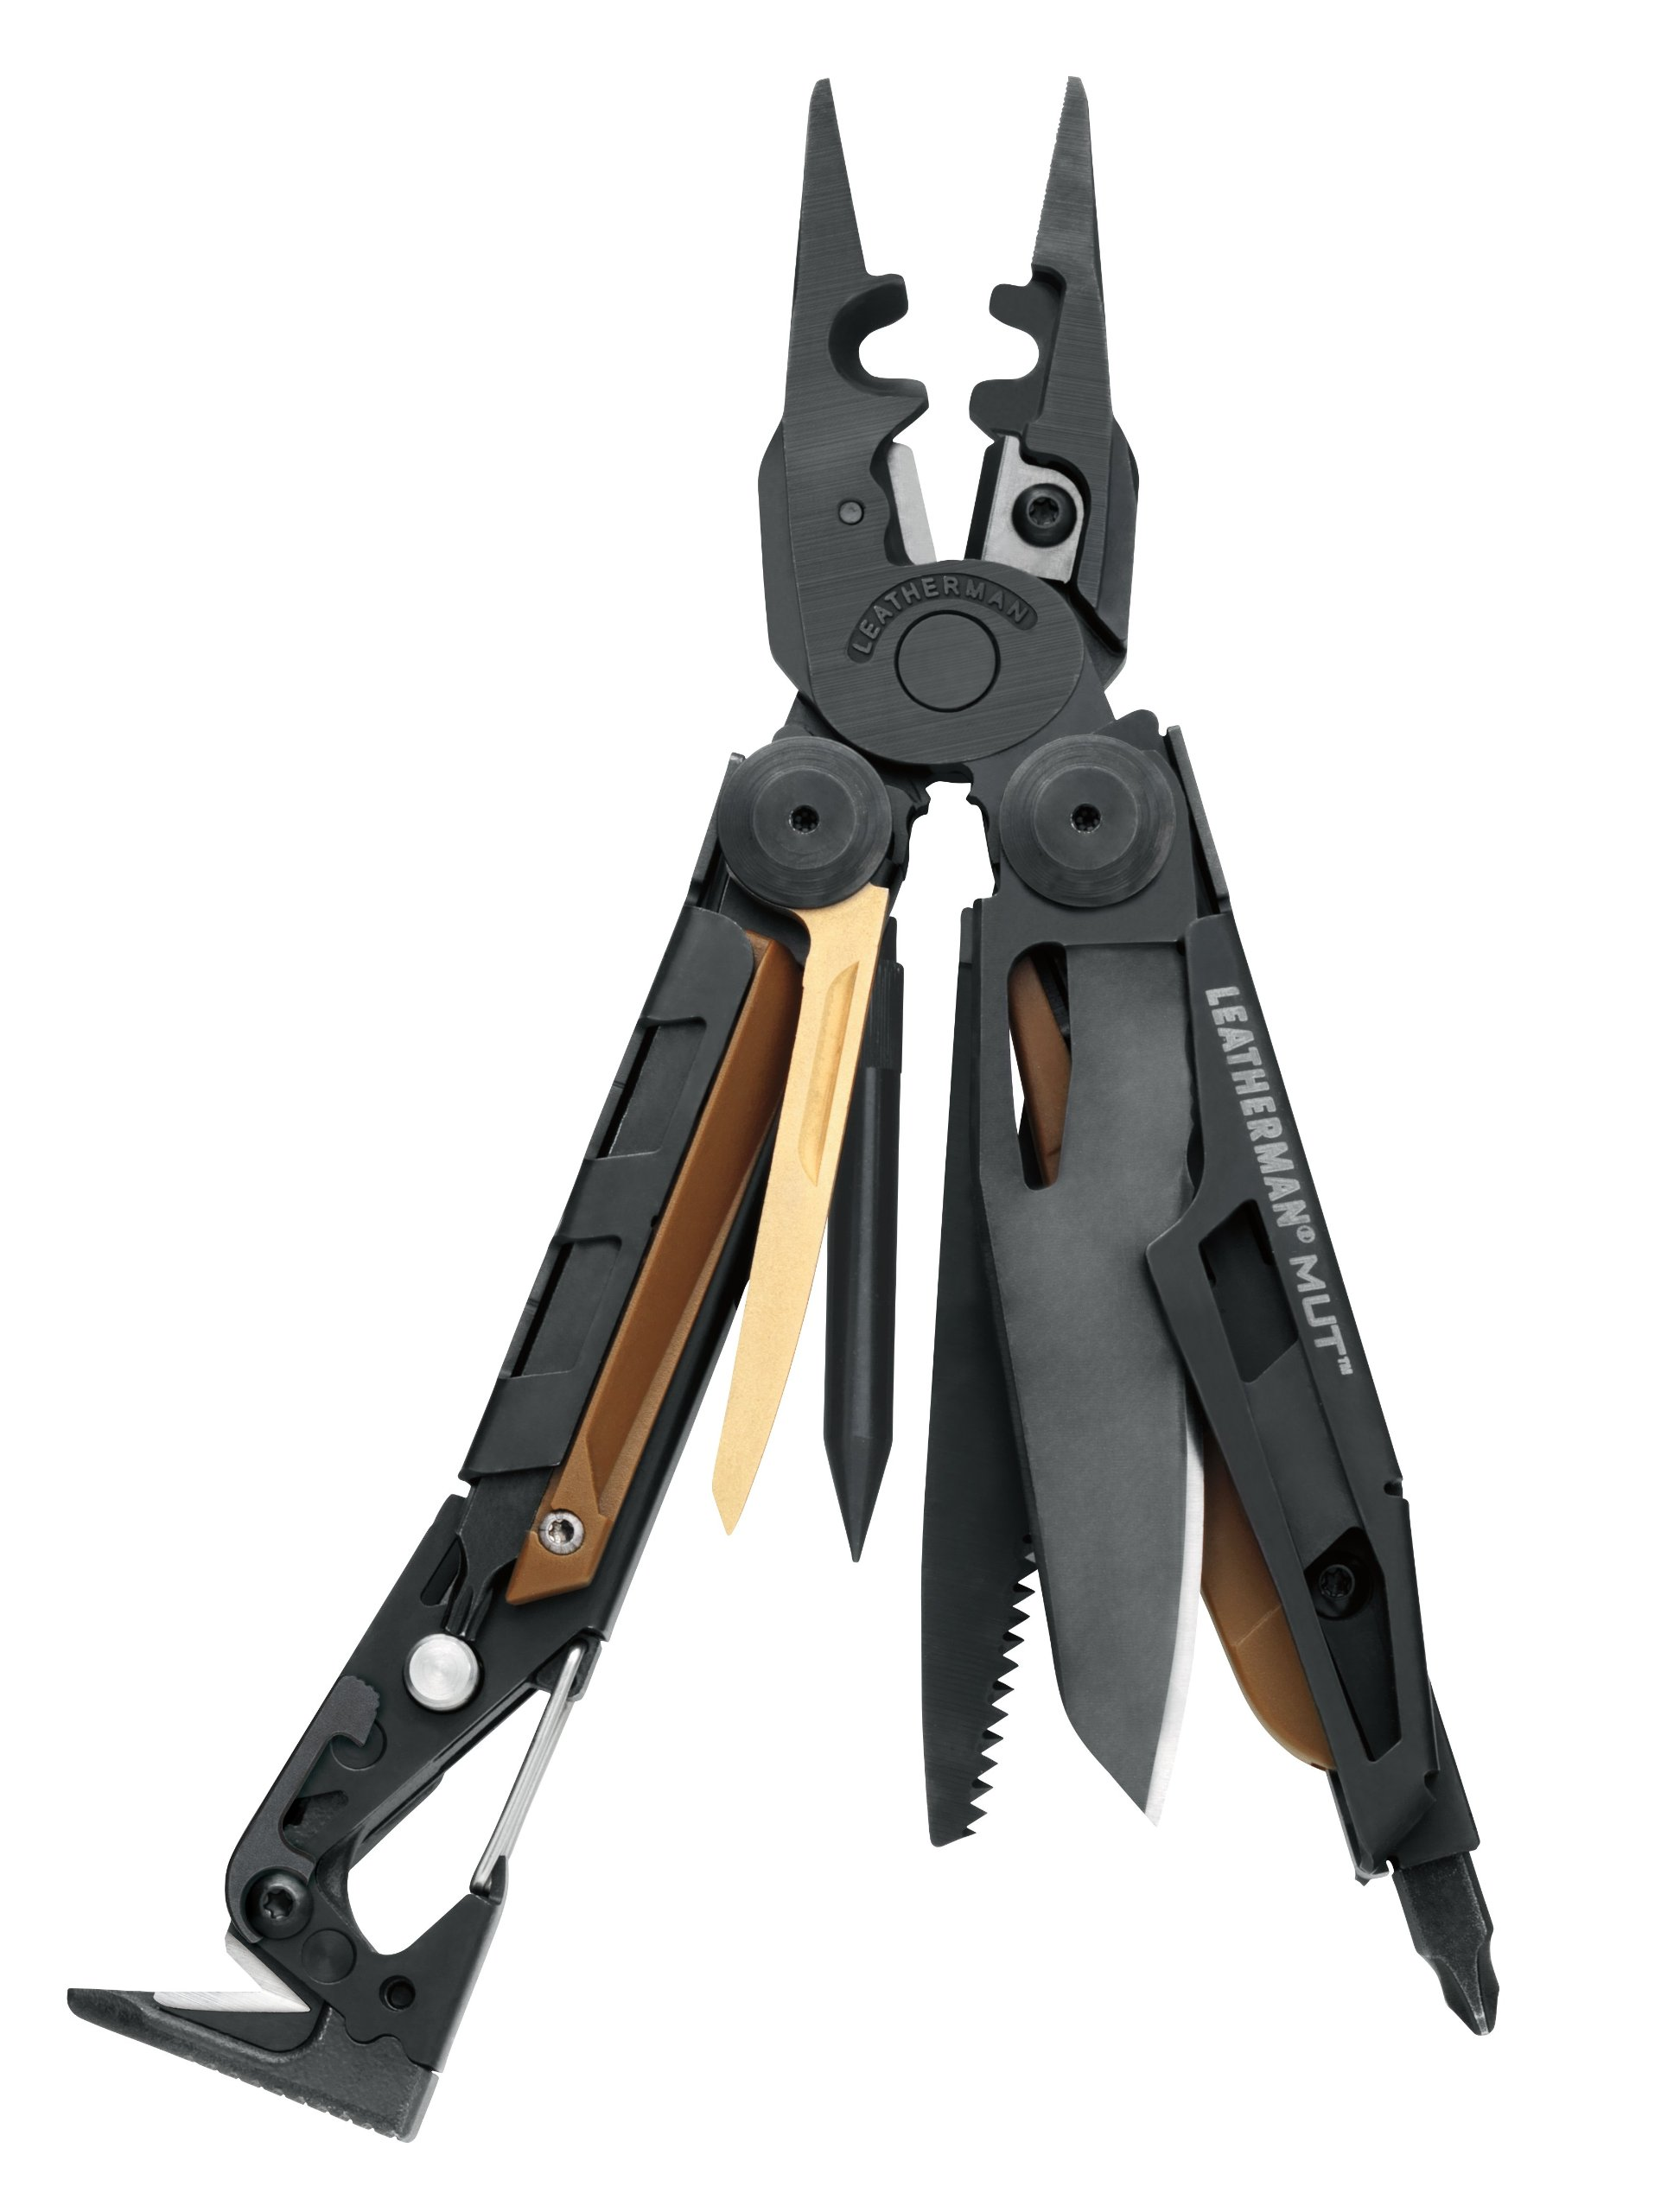 Leatherman - MUT EOD Multitool, Black with MOLLE Brown Sheath